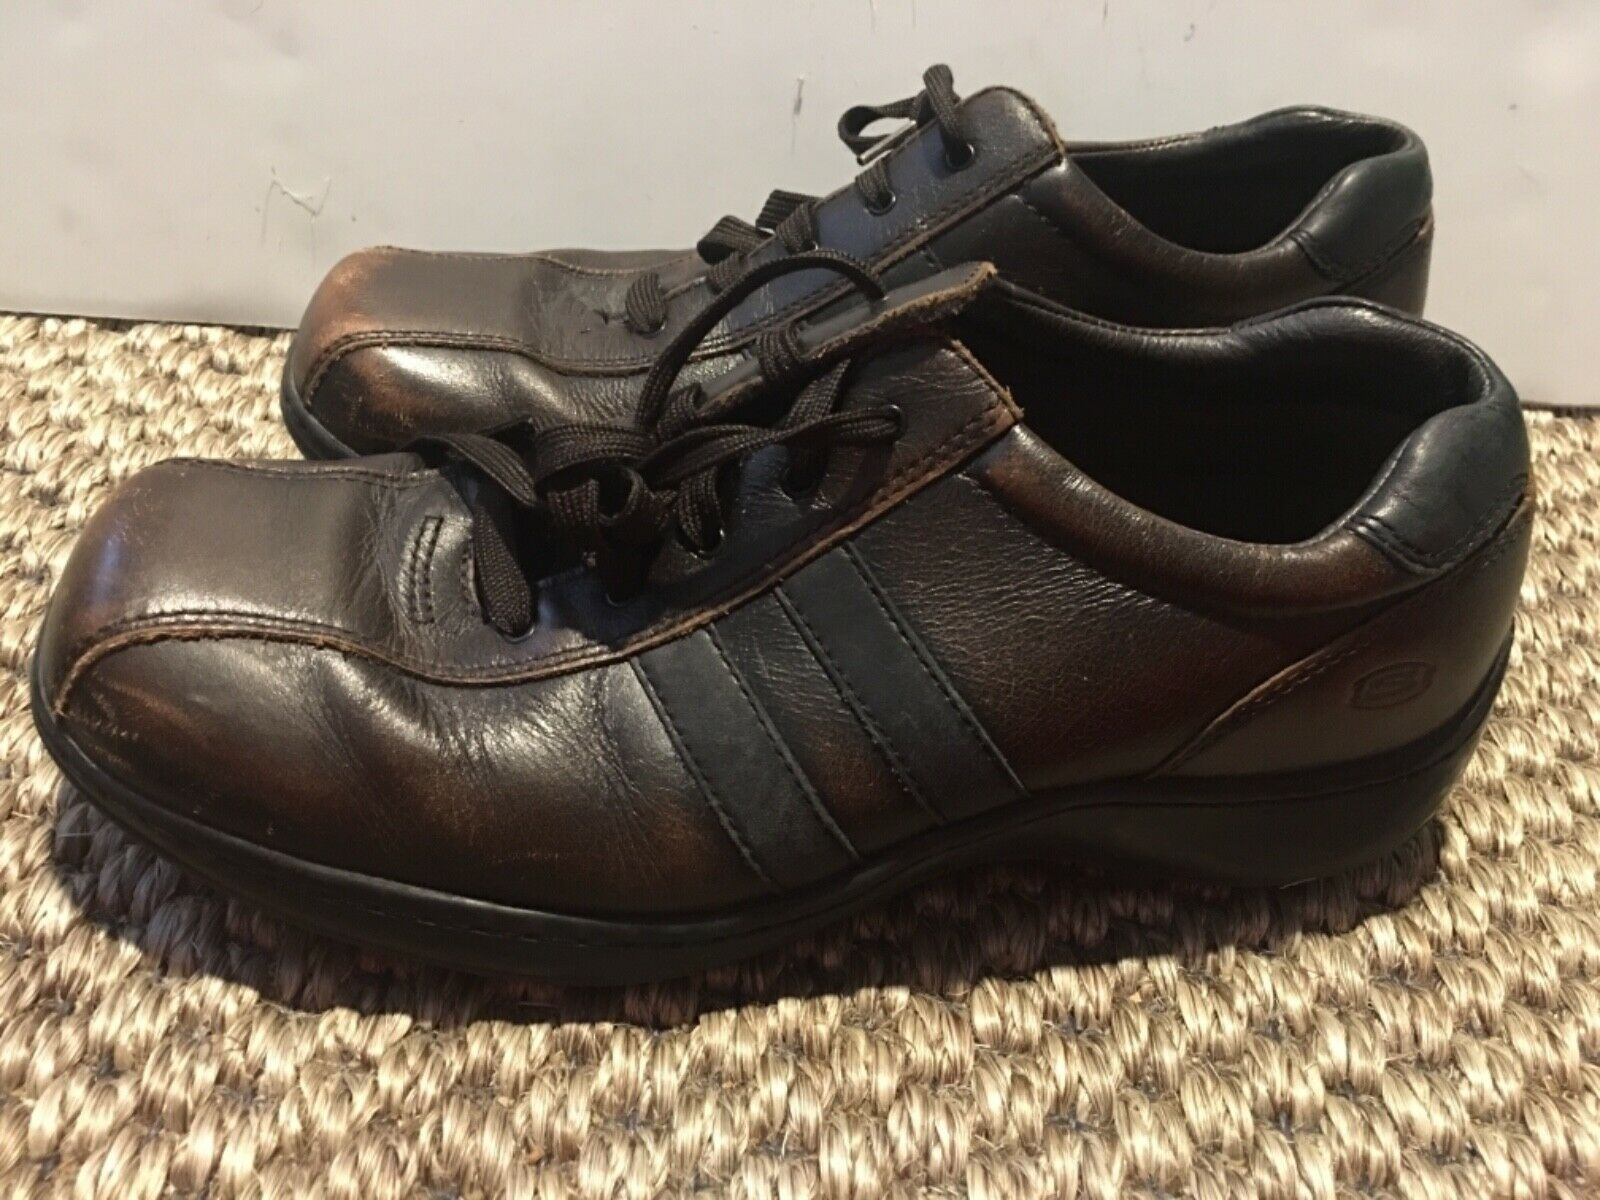 Skechers Men's Sneakers Relaxed Step Brown Leather Patina Lace Up 11